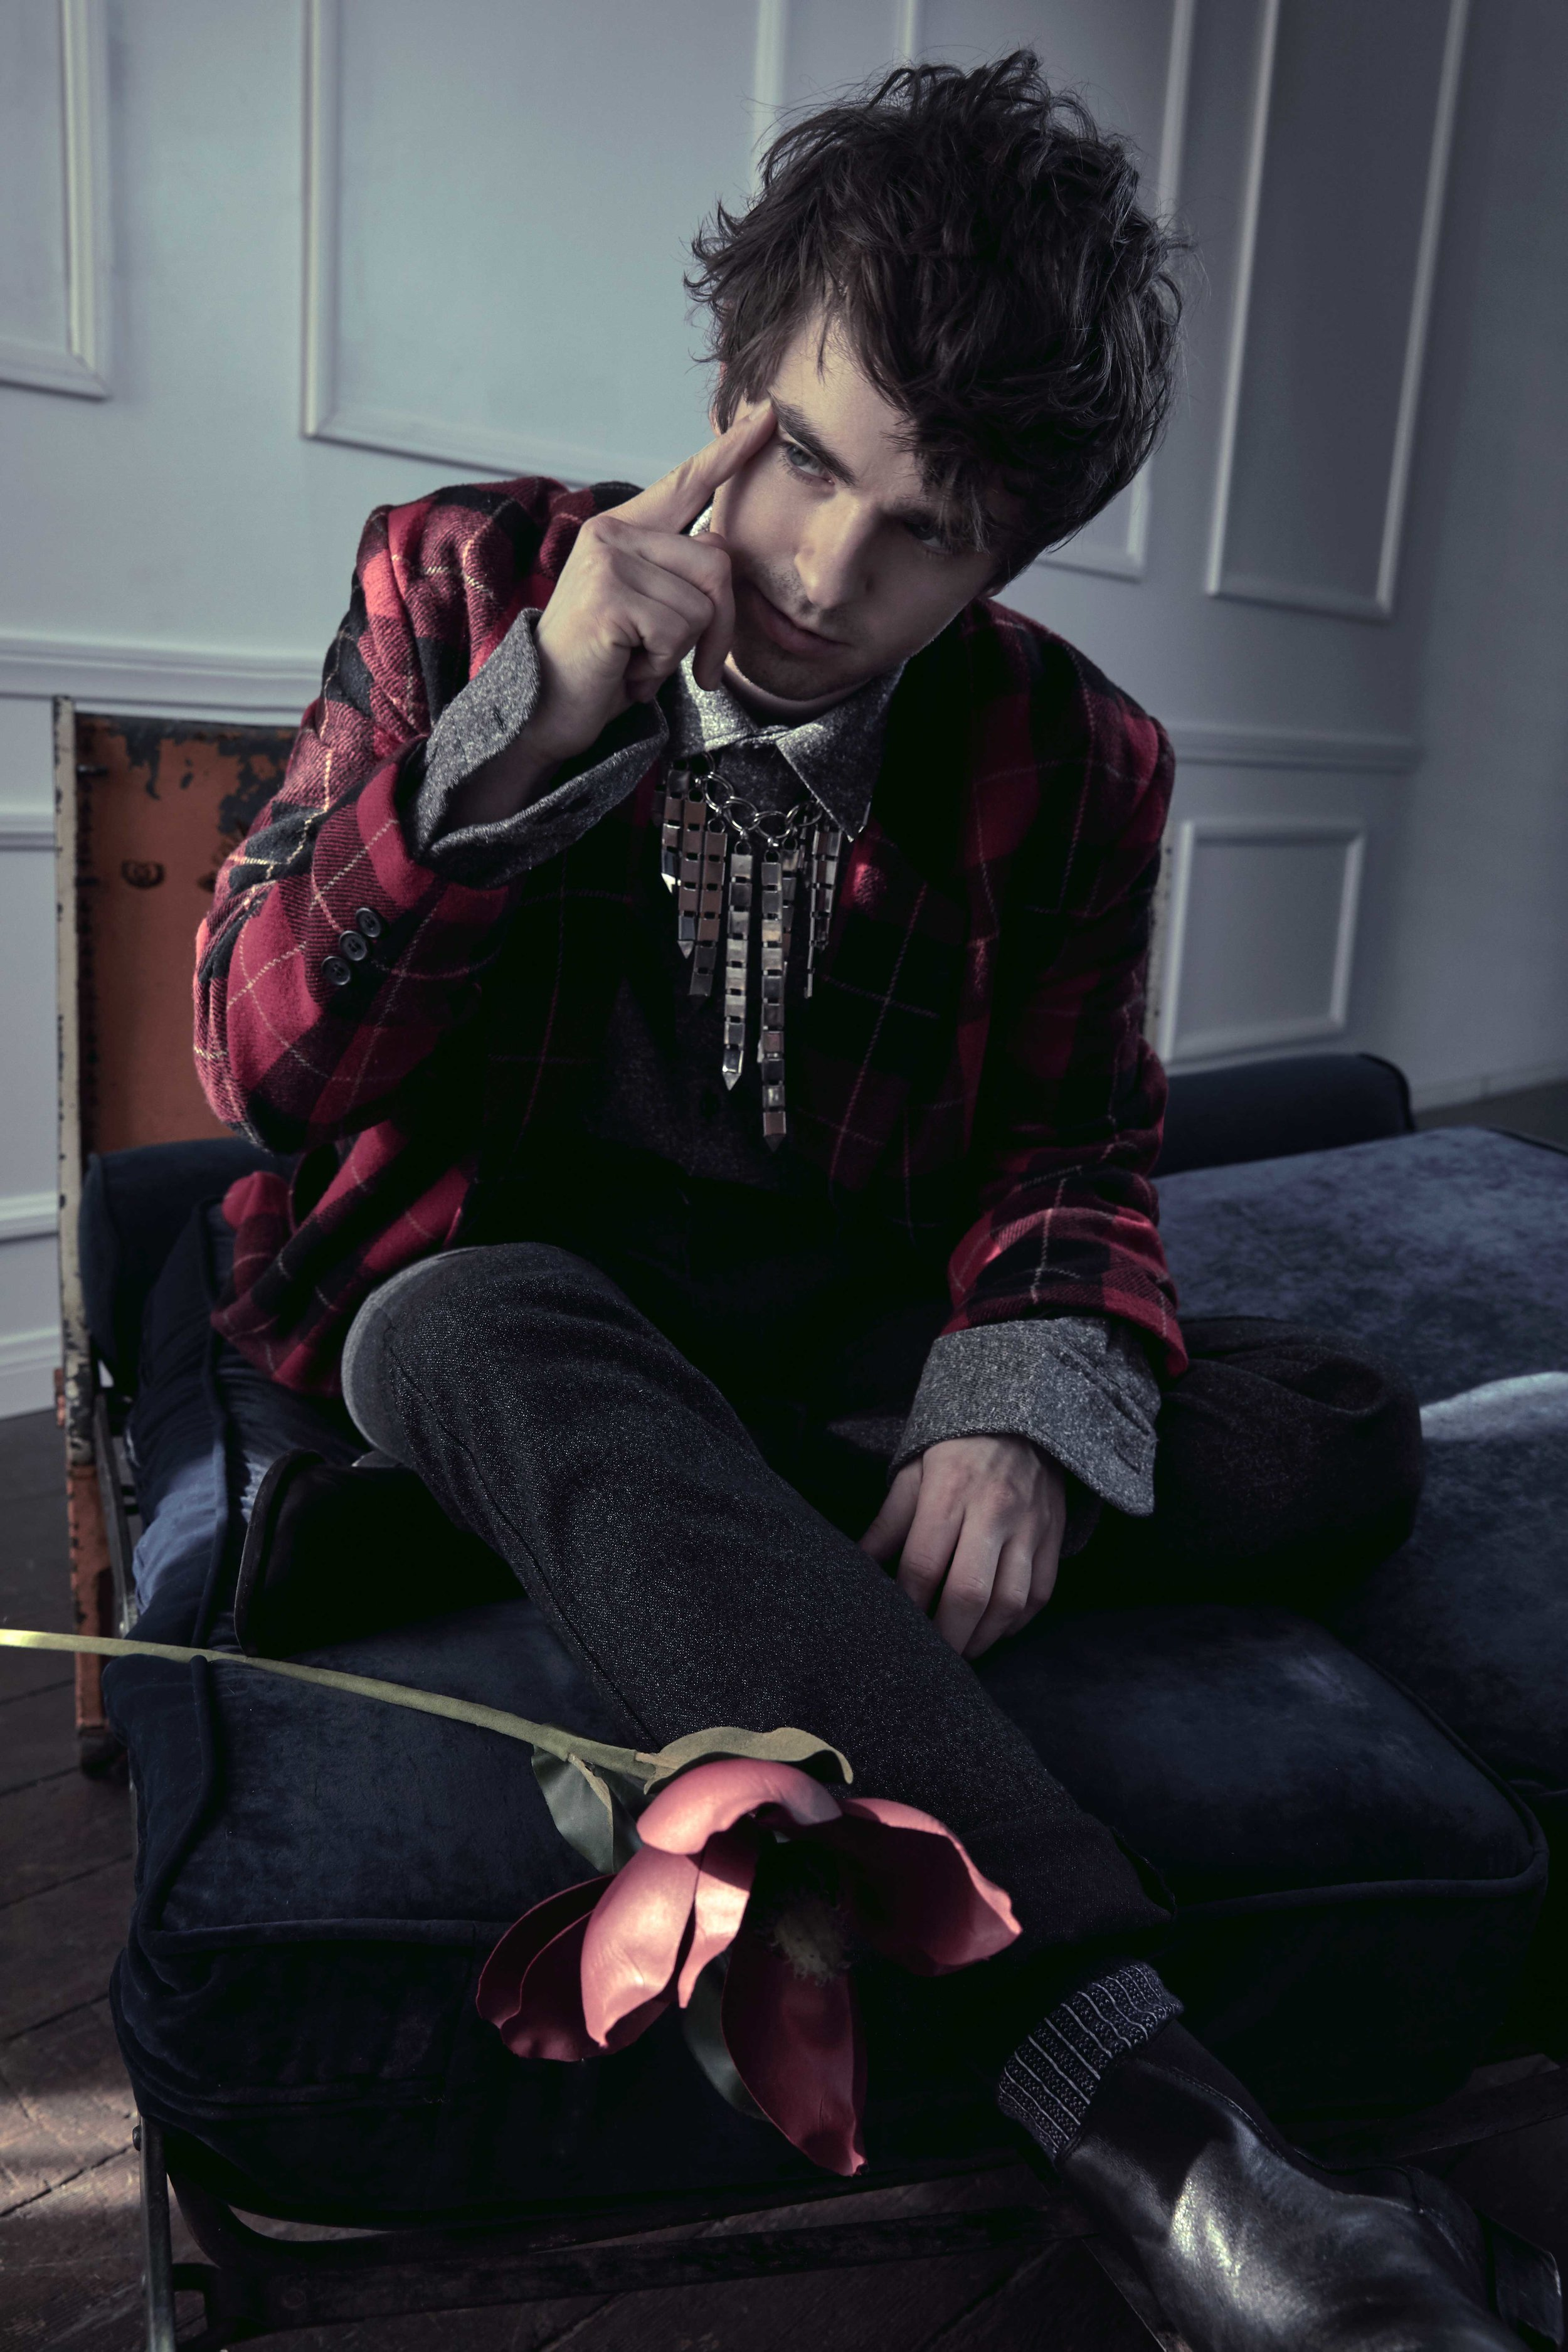 FREDDIE HIGHMORE - ROGUE MAGAZINEfeaturing *** freddie highmorecreative director *** chris kochdirector of photography *** chris kochphotography *** jonny marlowlighting tech *** alexander fenyvesstyling *** wilford lenovgrooming *** molly greenwald @ the wall groupmusic *** resist – hoy la post production *** tribe federation Editor in Chief  - Heather SeidlerEditorial Director - Katie McGeheeEditorial Assistant - Malorie McCall